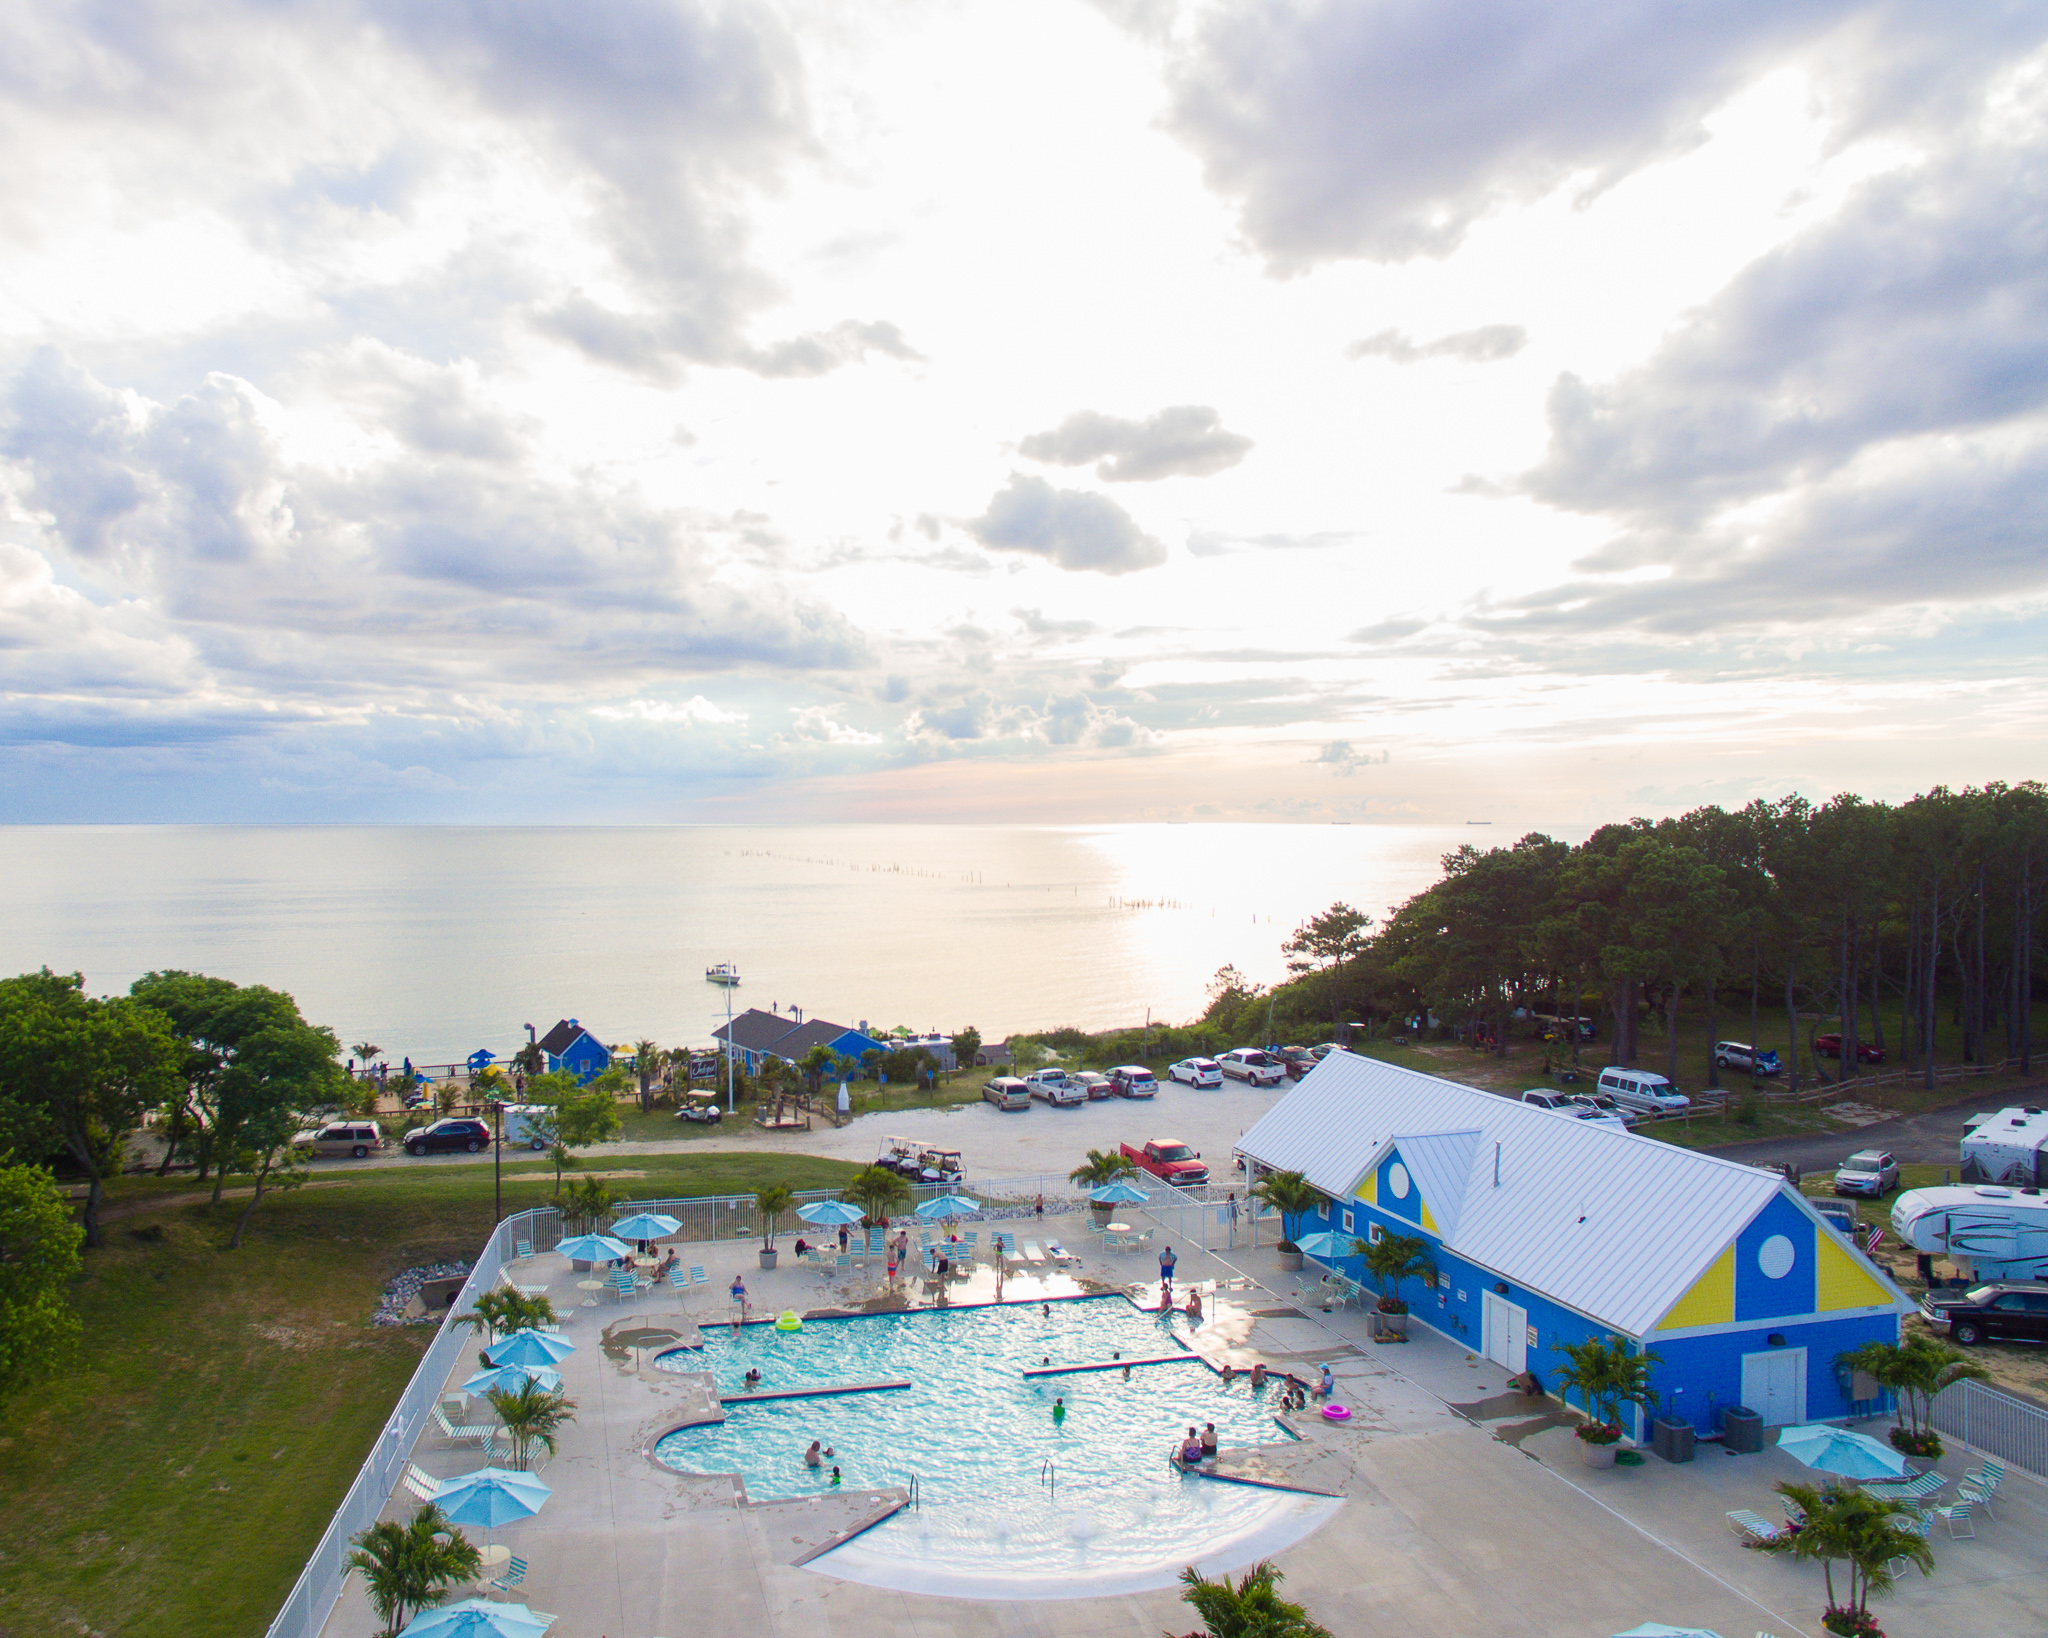 Gorgeous arial view of community pool with sunset in background